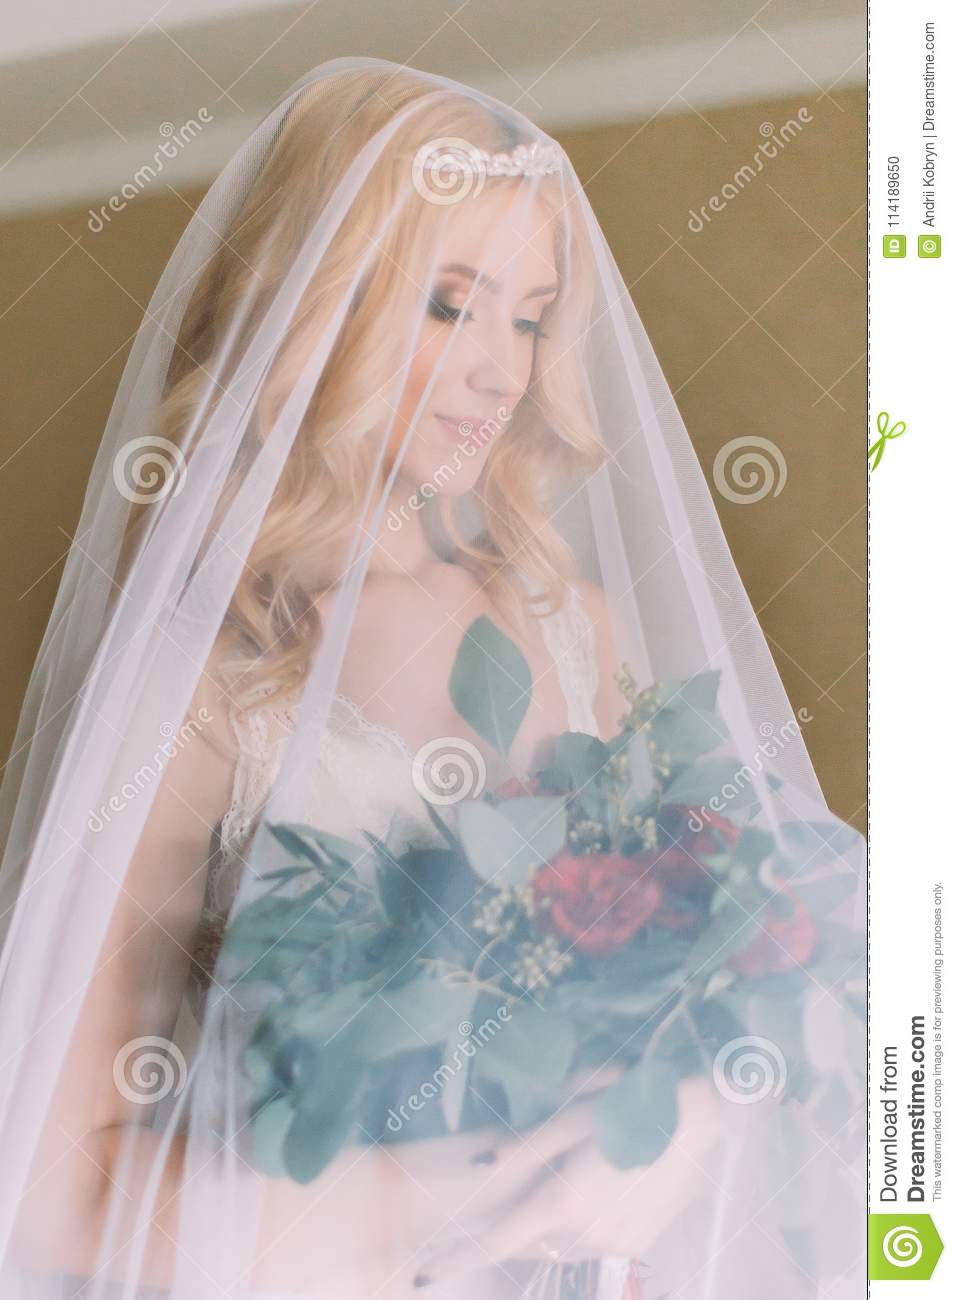 26b2ee0785a Blonde bride with long veil dressed in white underwear standing on the bed  and holding wedding bouquet.